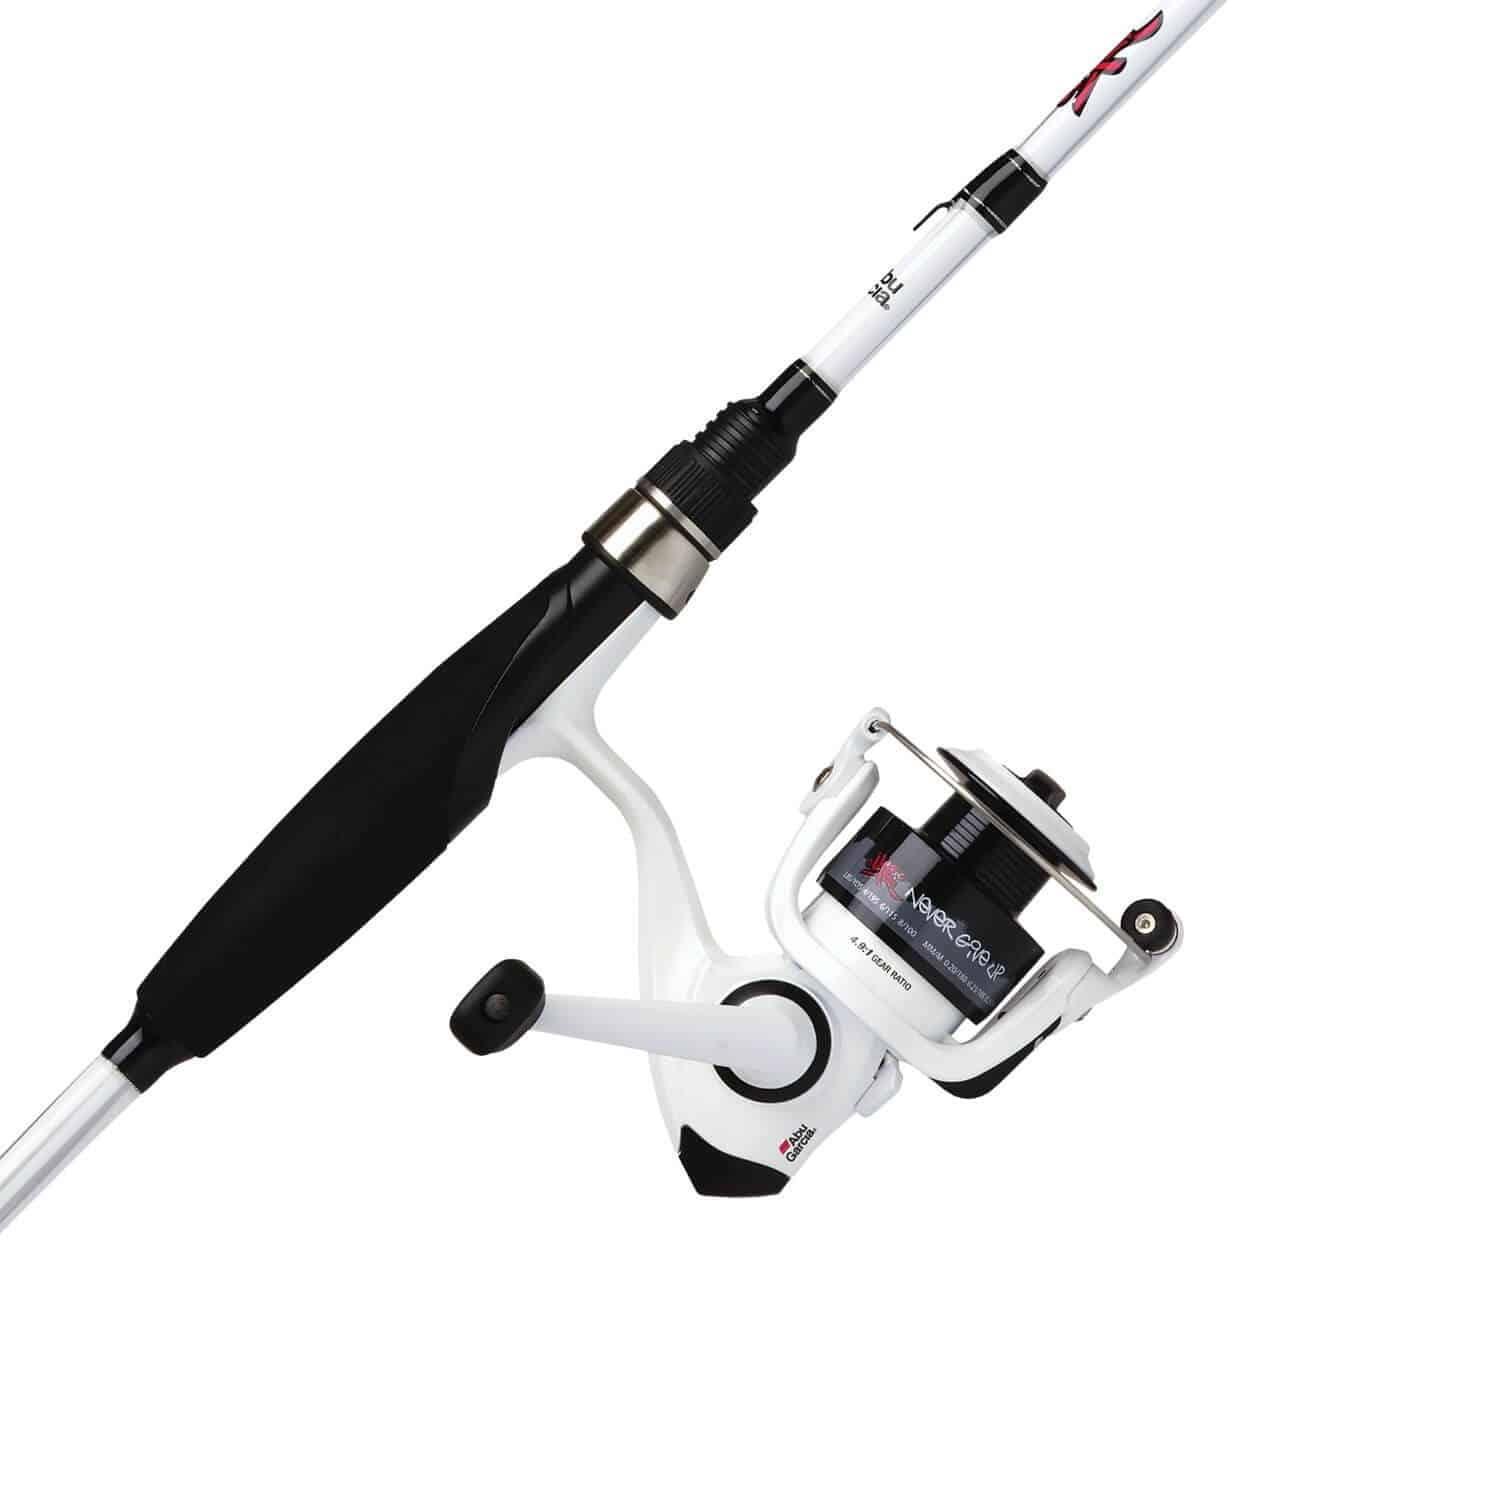 Best spinning rod and reel combo gift fins catcher for Best fishing rods